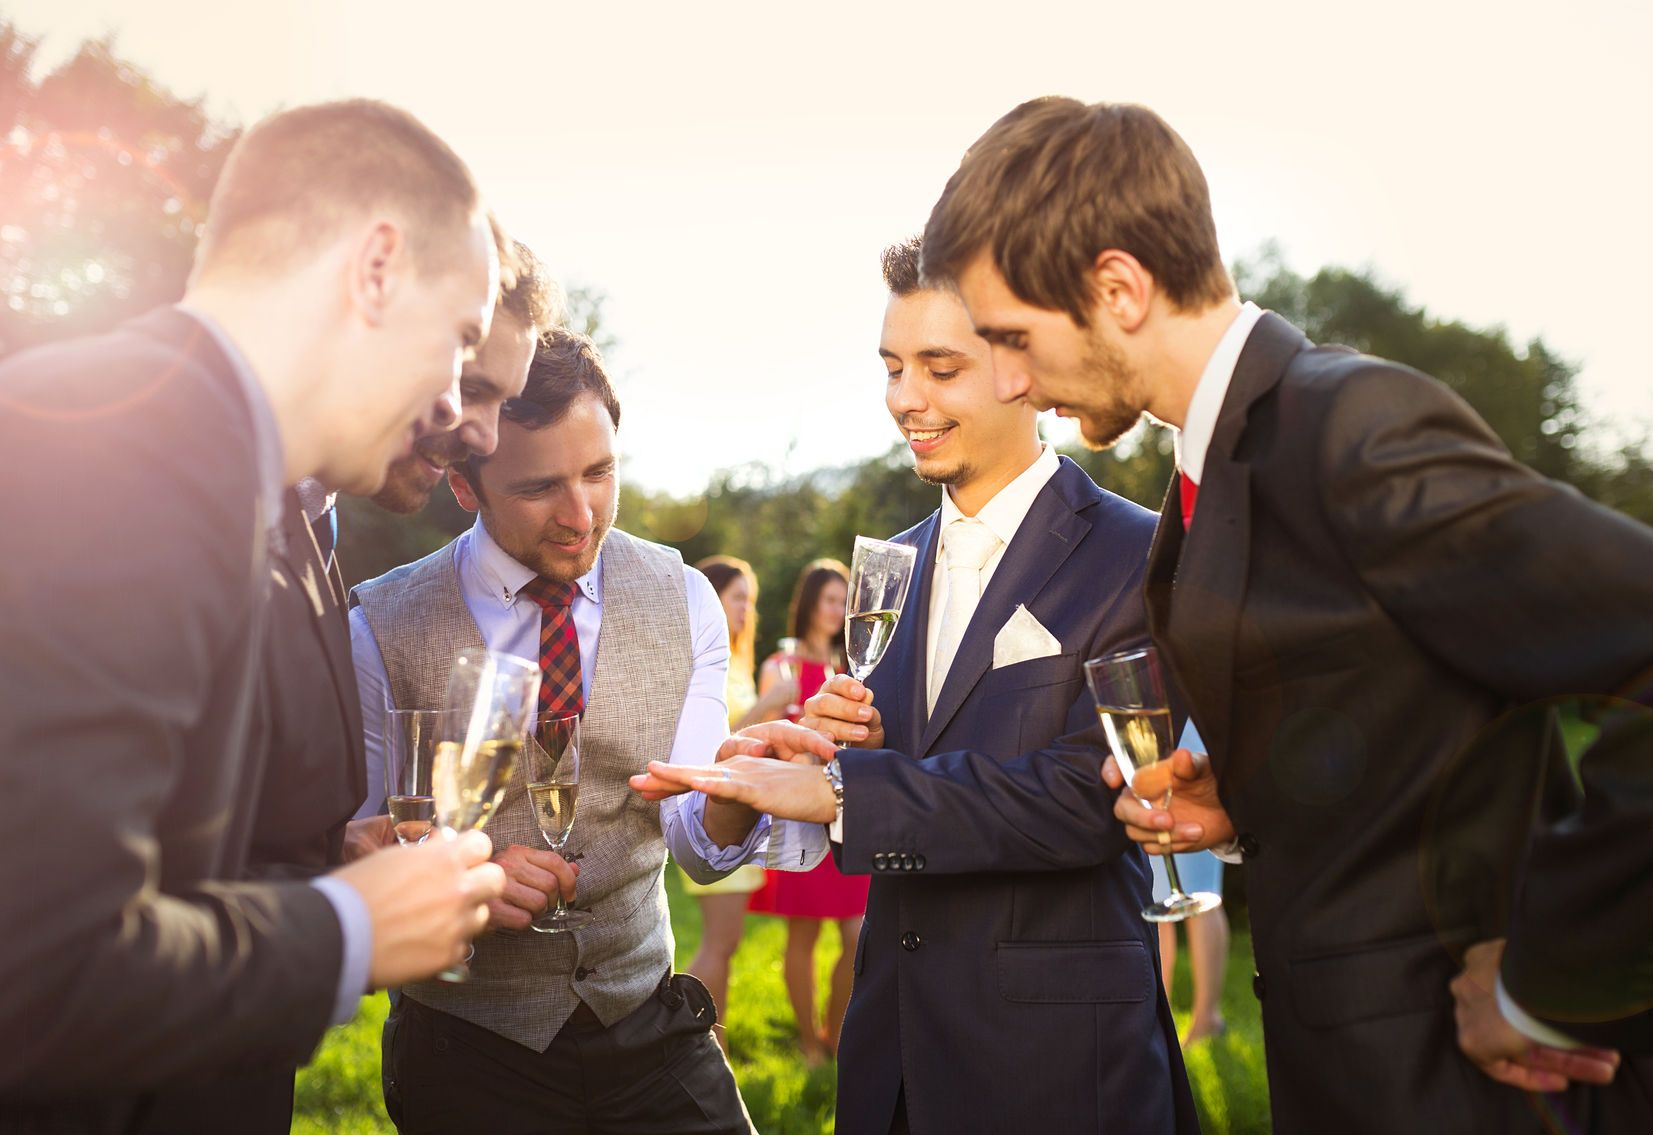 Summer Wedding Attire for Men: The Ultimate Guide